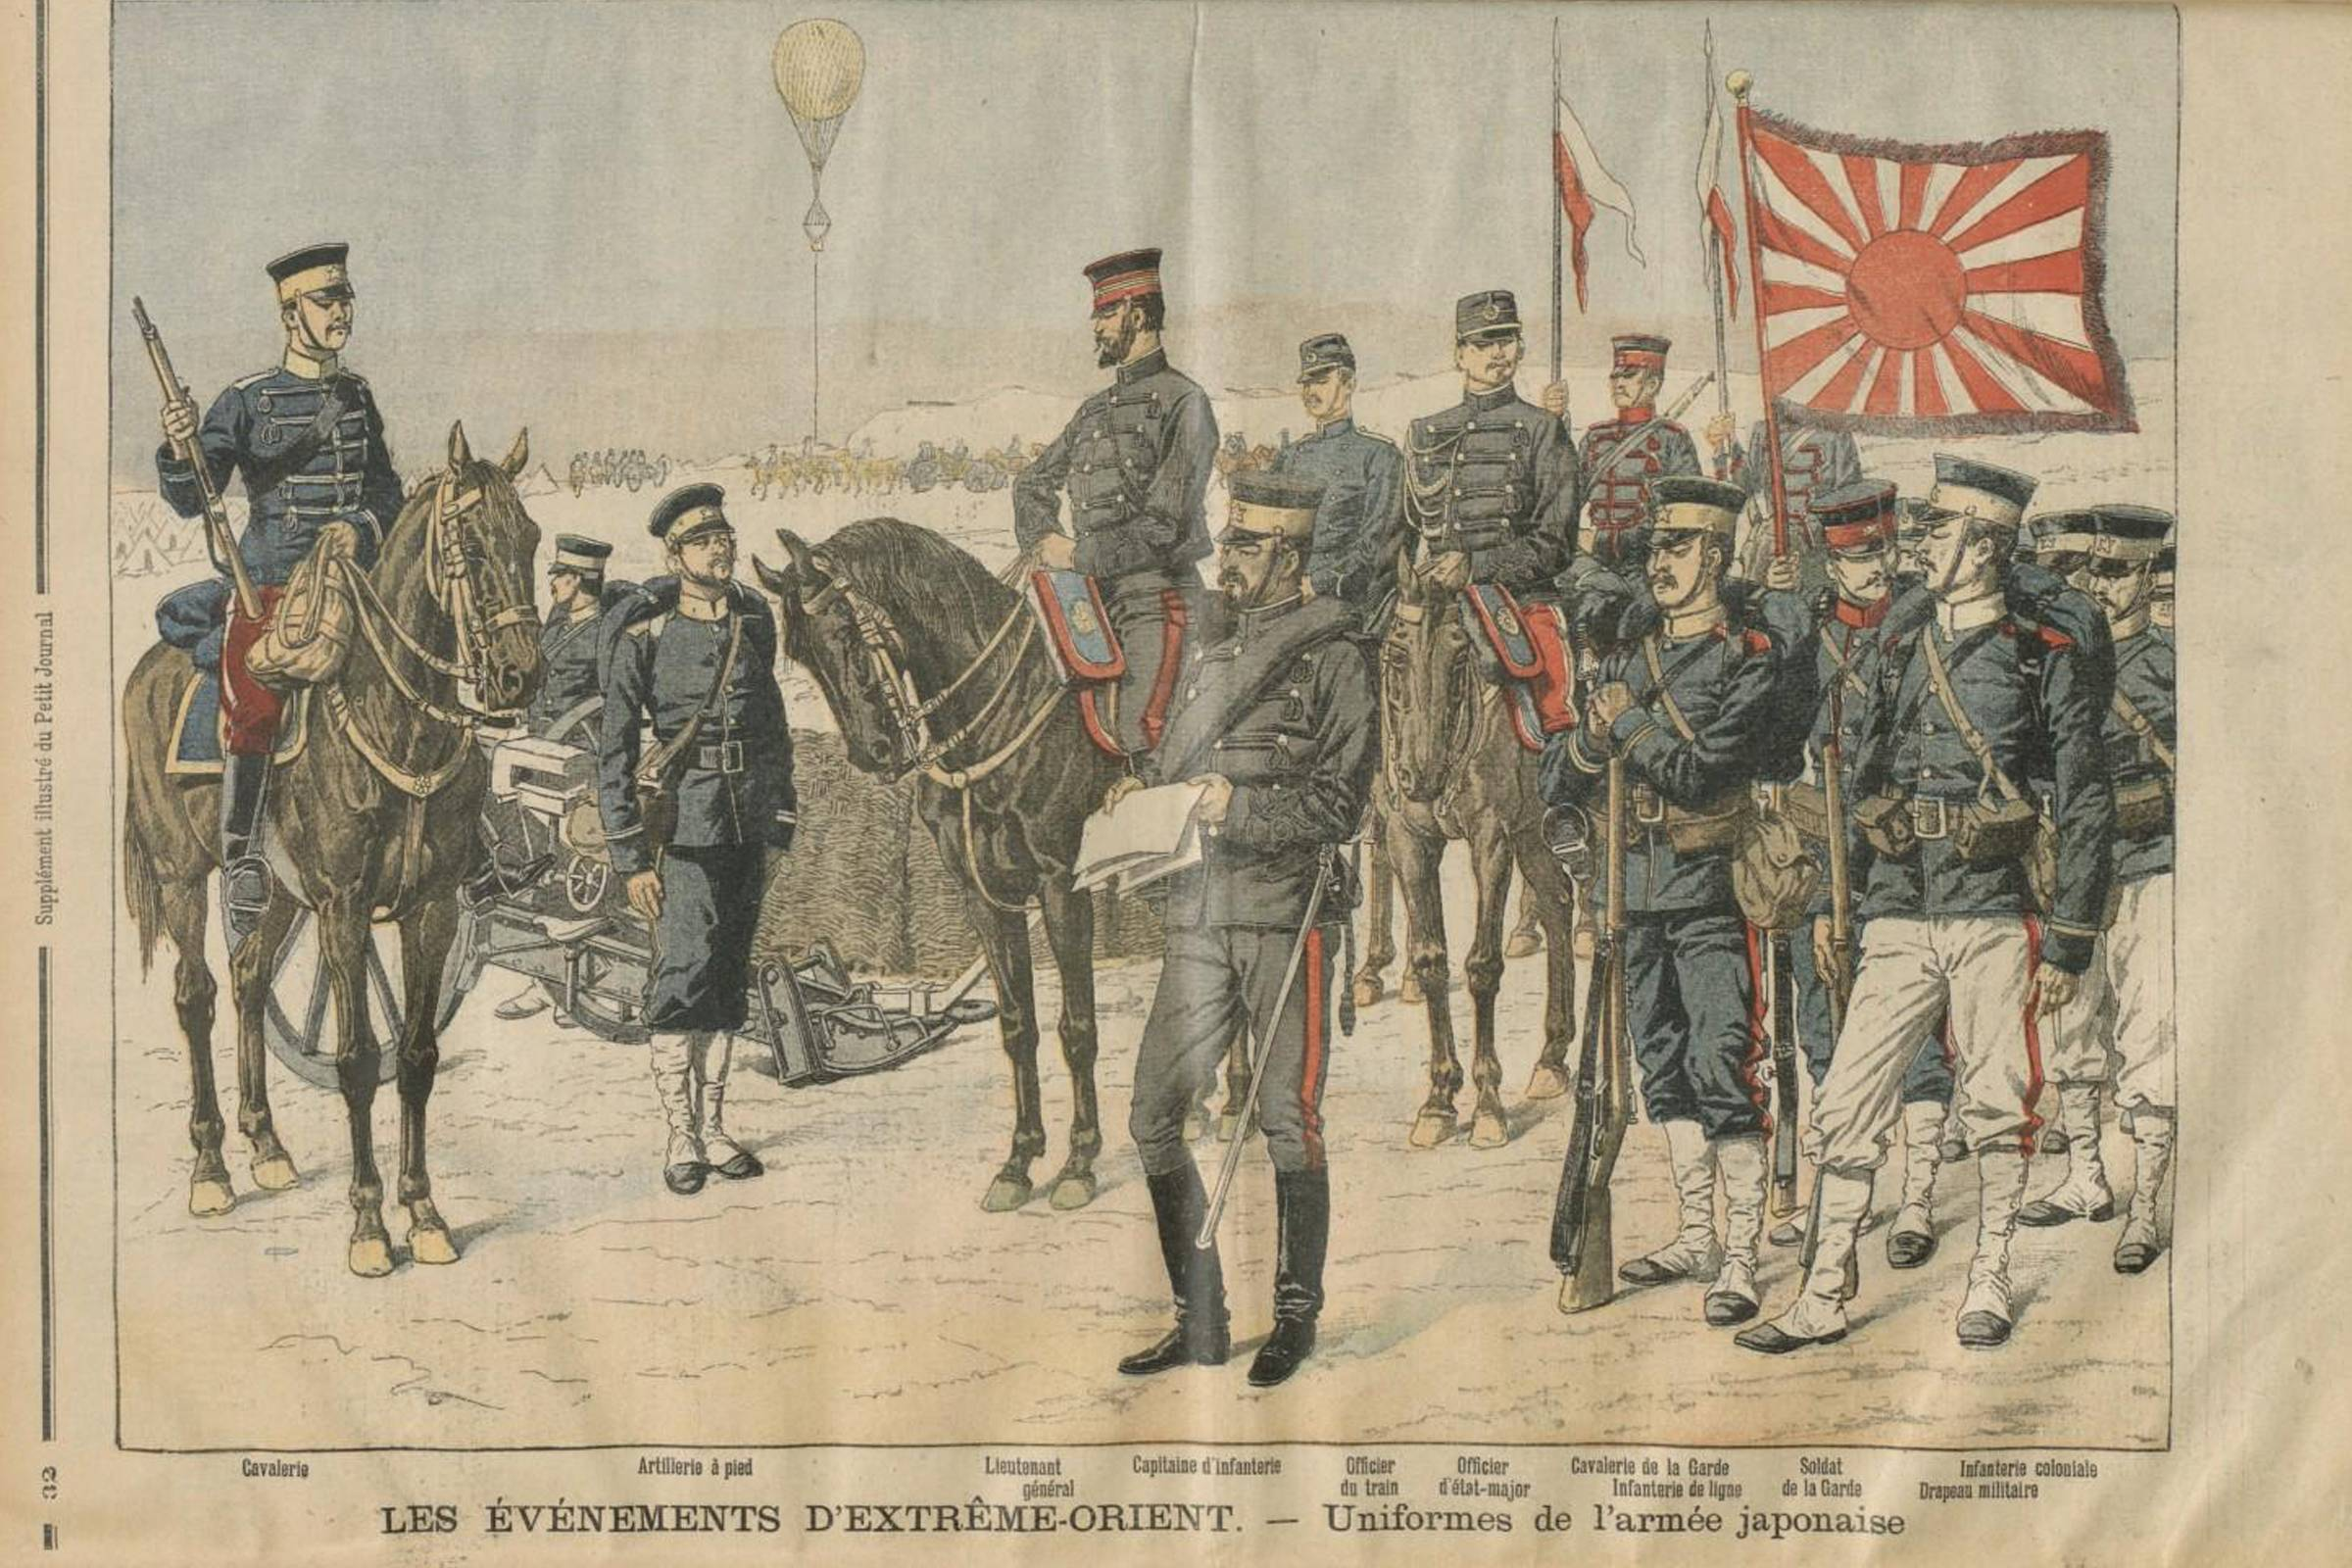 Uniforms of the Japanese Army in Manchuria in 1904, just before the start of the Russo-Japanese War